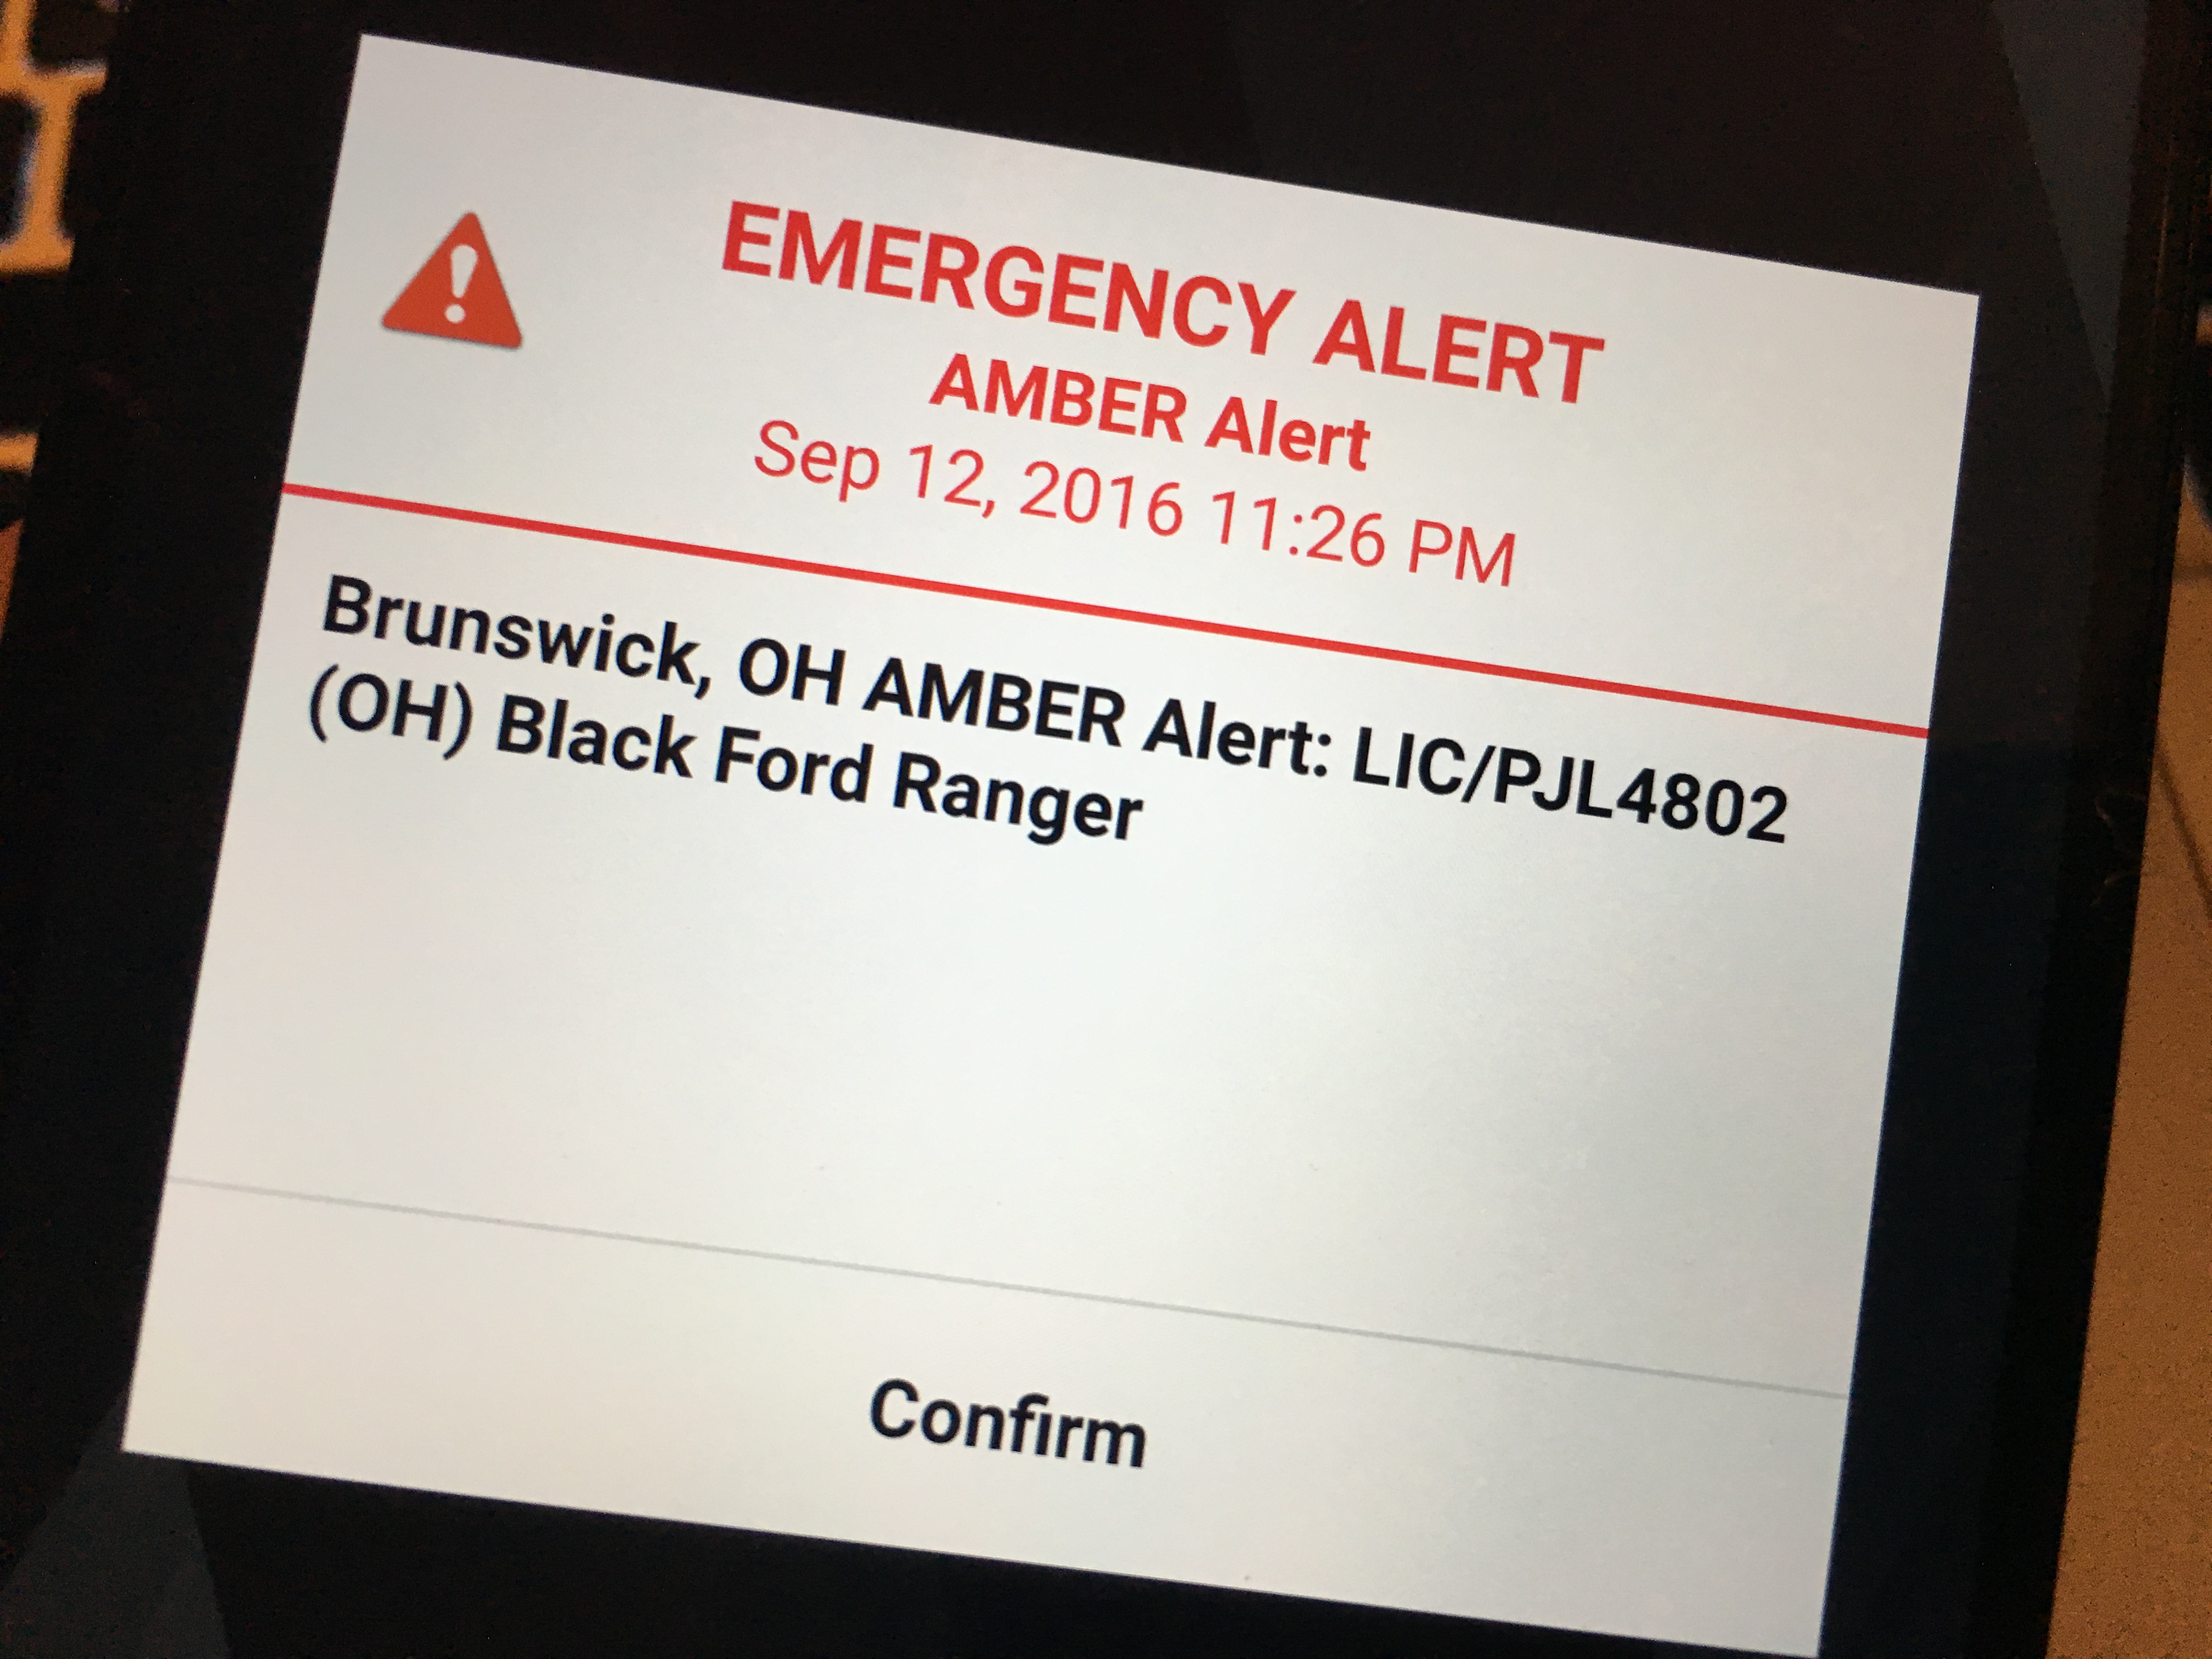 What to Do When You Get an Android or iPhone Amber Alert